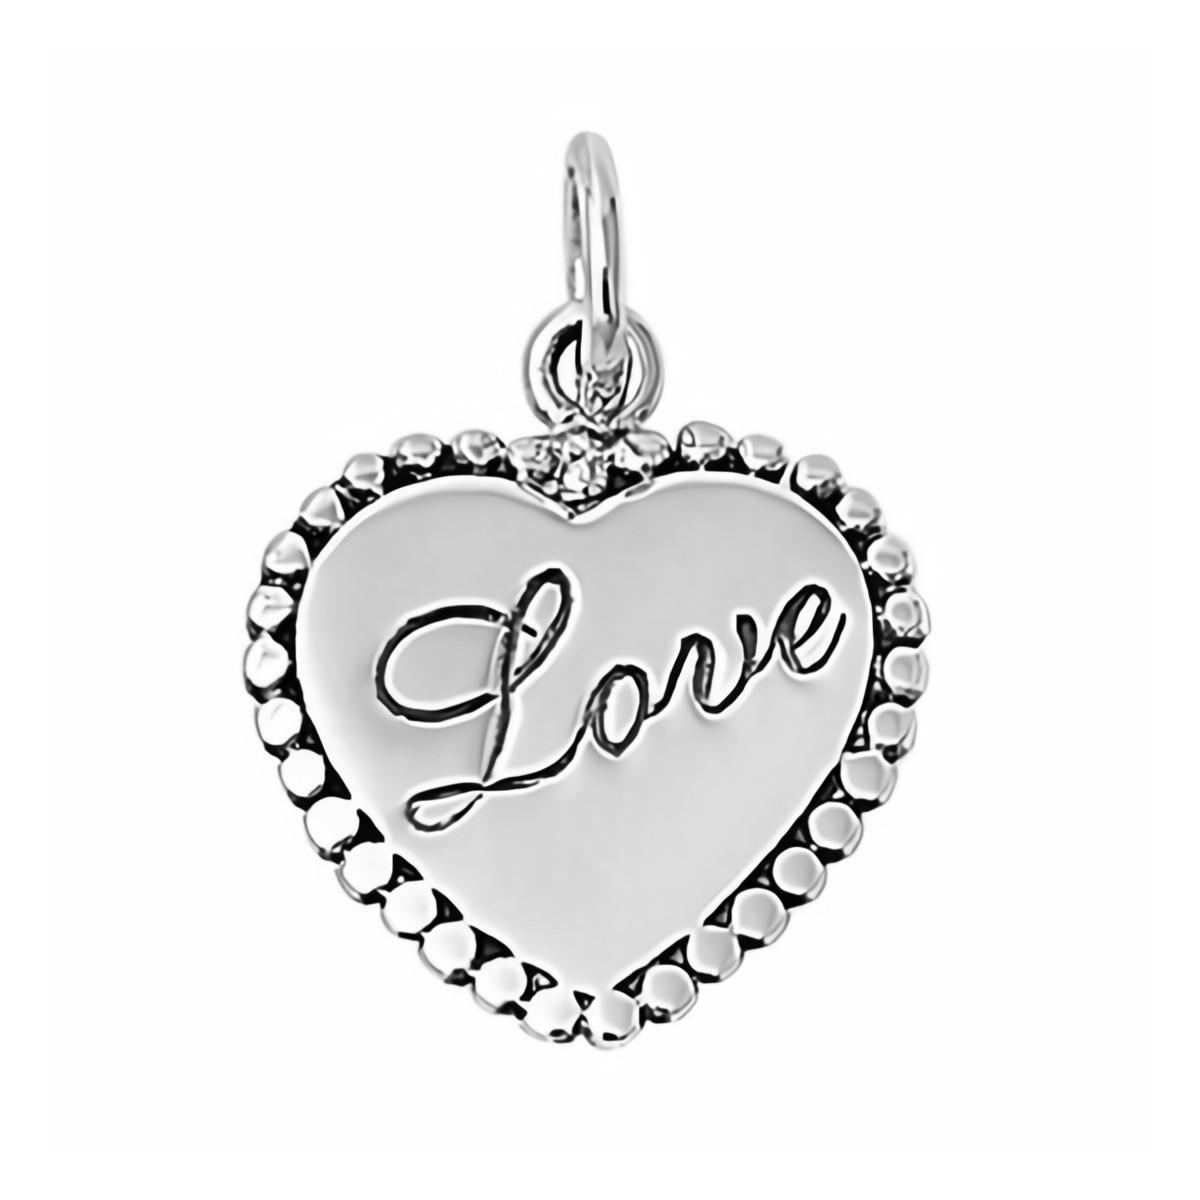 Cute Gift for Women Glitzs Jewels 925 Sterling Silver Pendant for Necklace